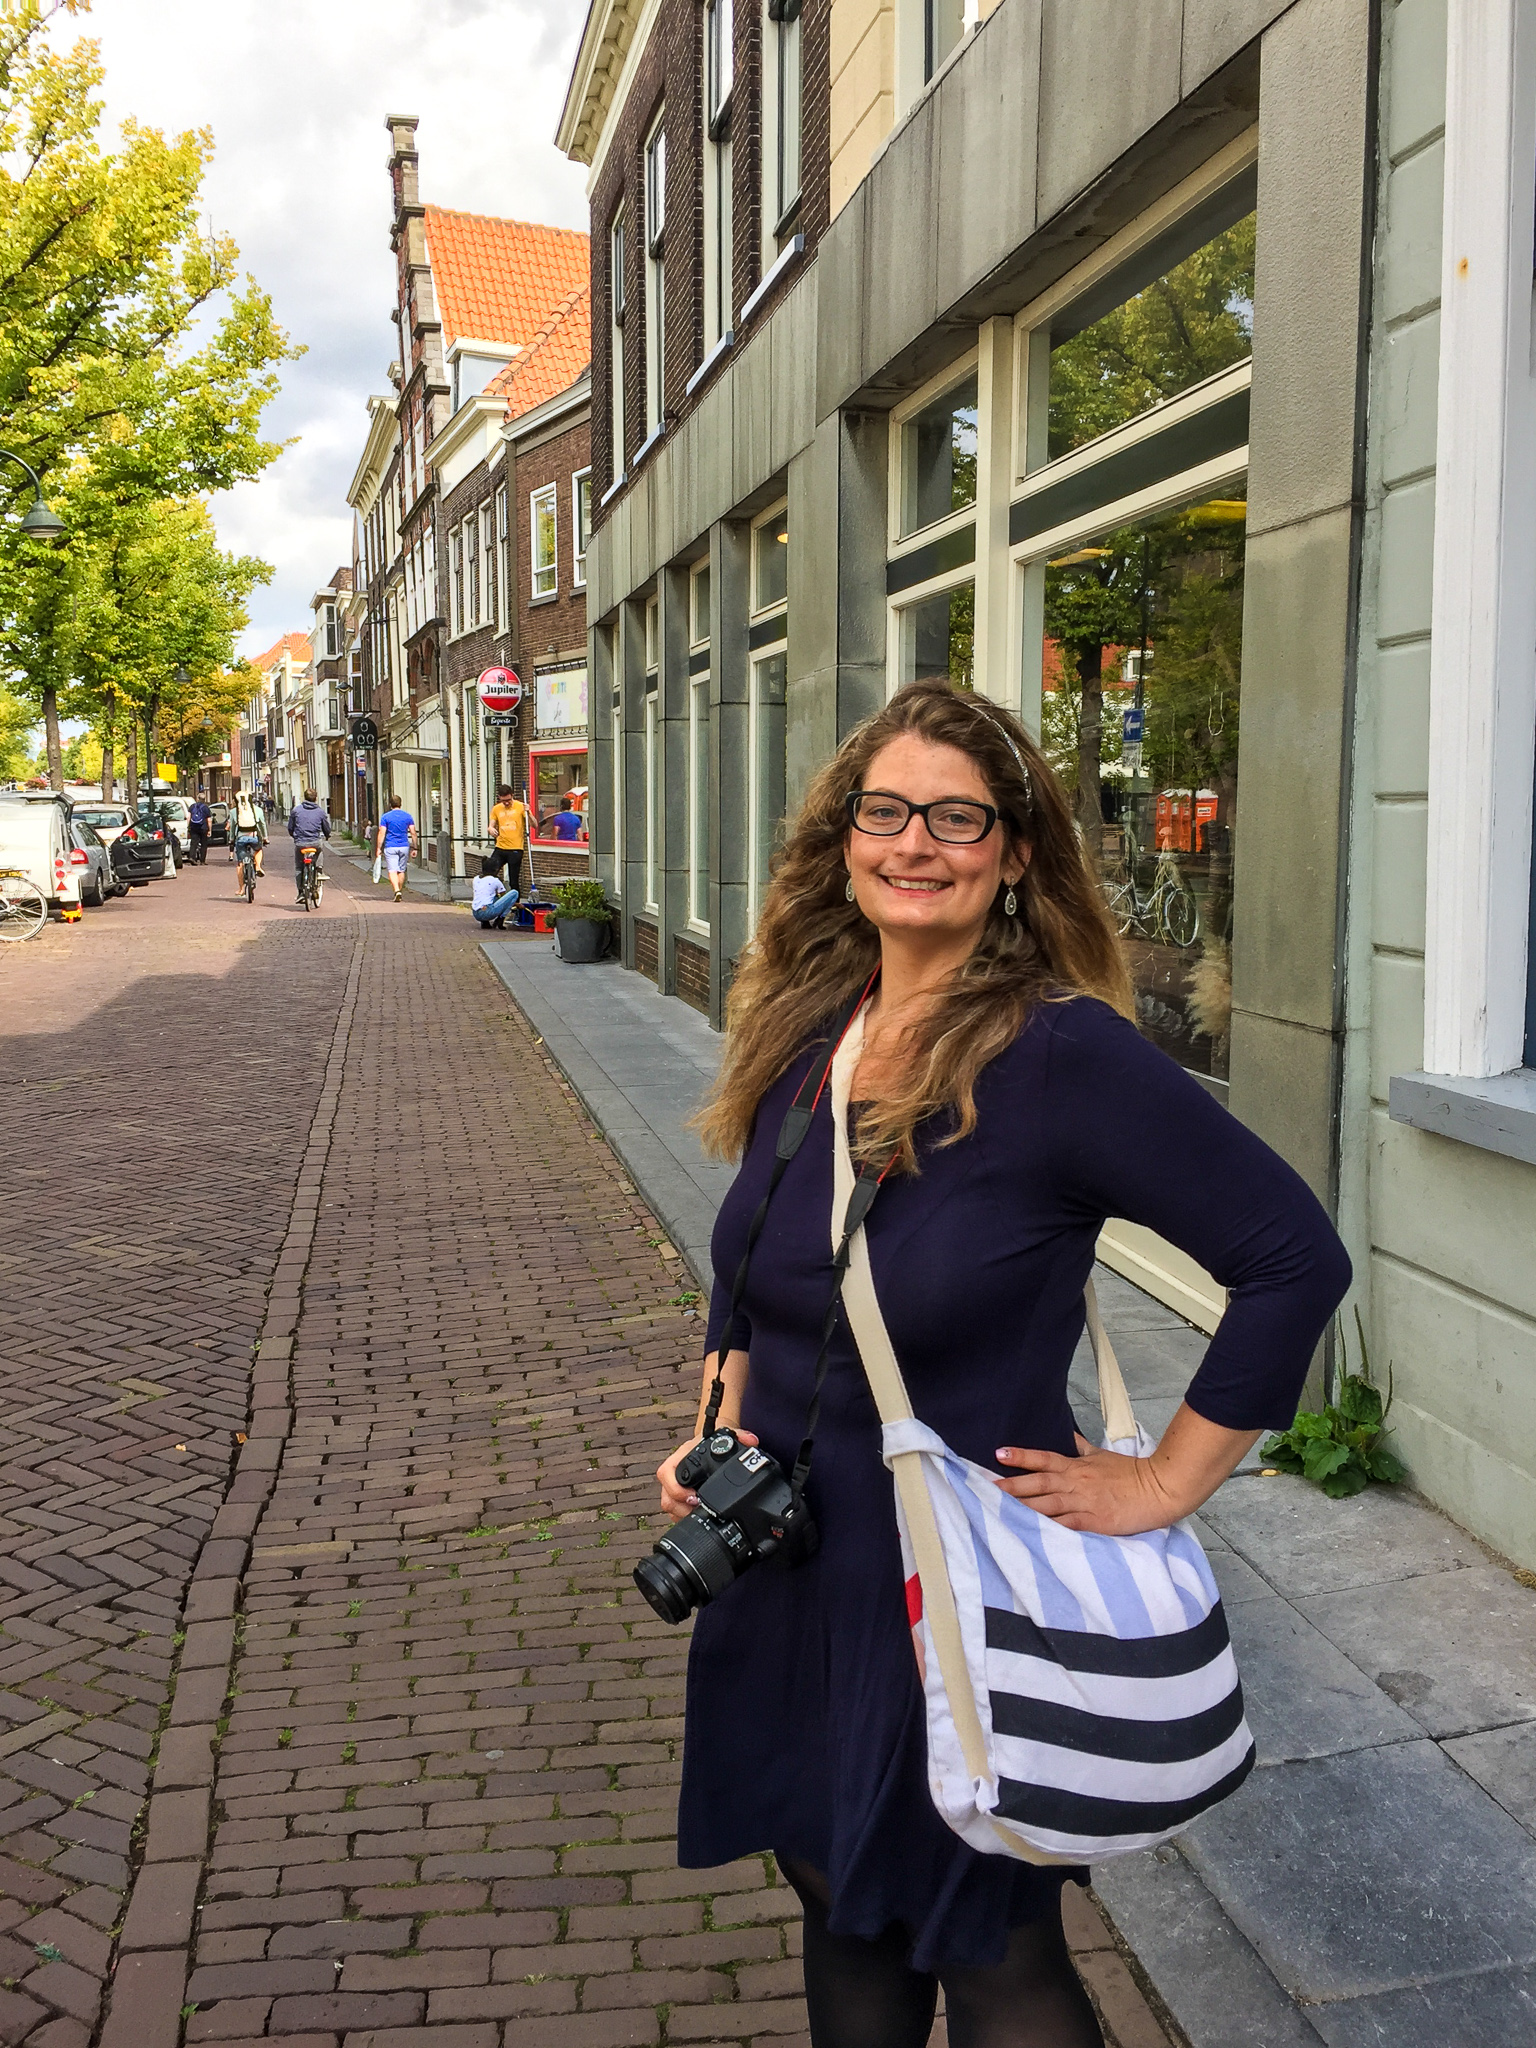 travel blogging as a career has allowed me to go to the netherlands